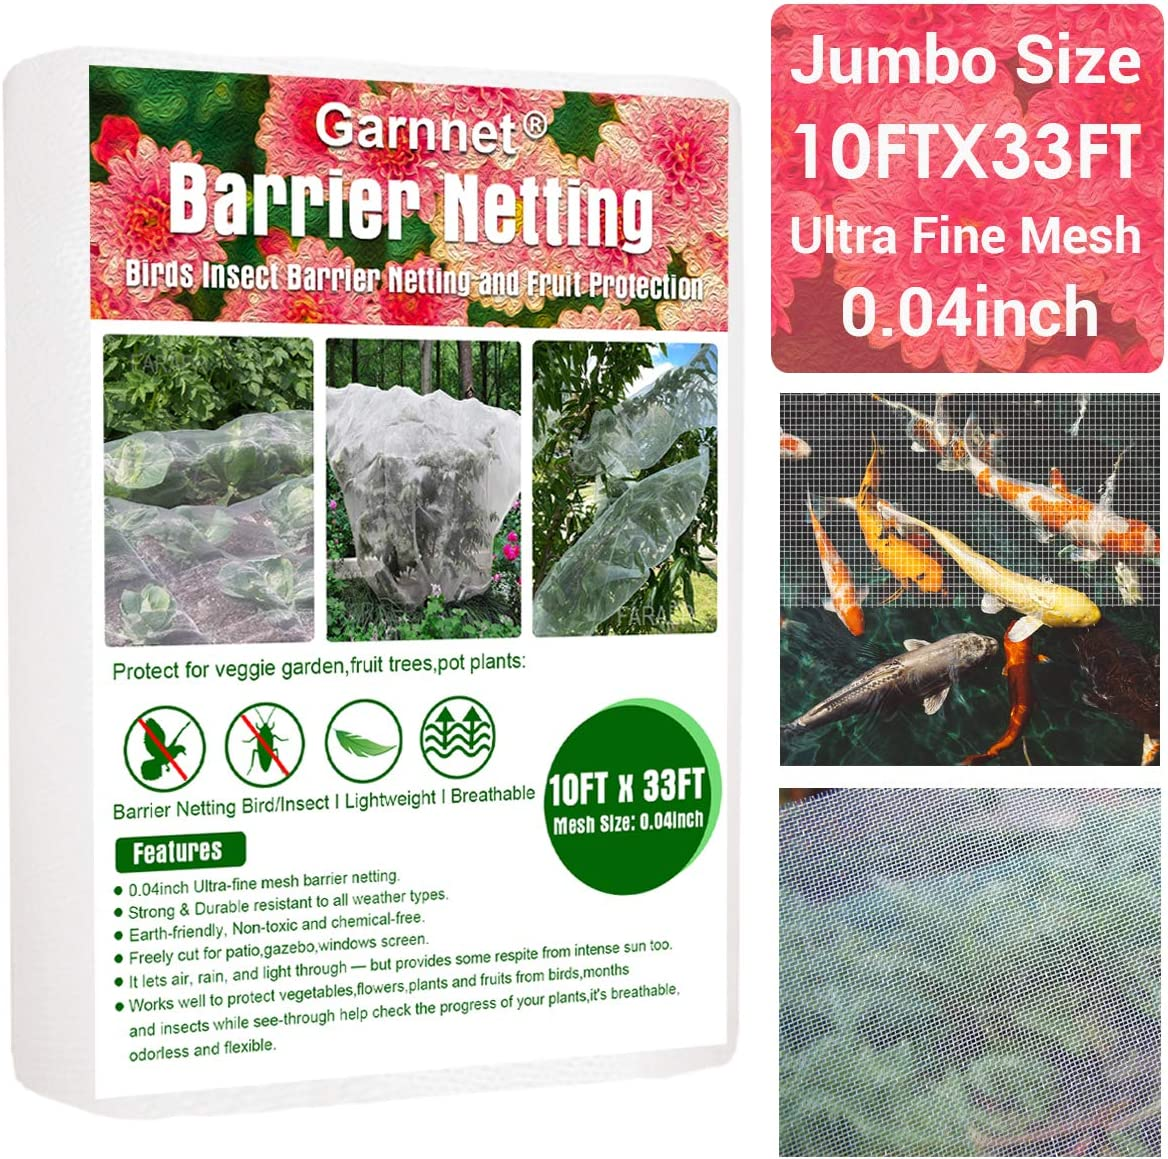 Garden Barrier Netting, 10ftx33ft Ultra Fine Mesh Netting Protection Screen Bird Net Plant Covers Row Cover Protect Plants Fruits Flowers Against Birds & Squirrels for Greenhouse Patio